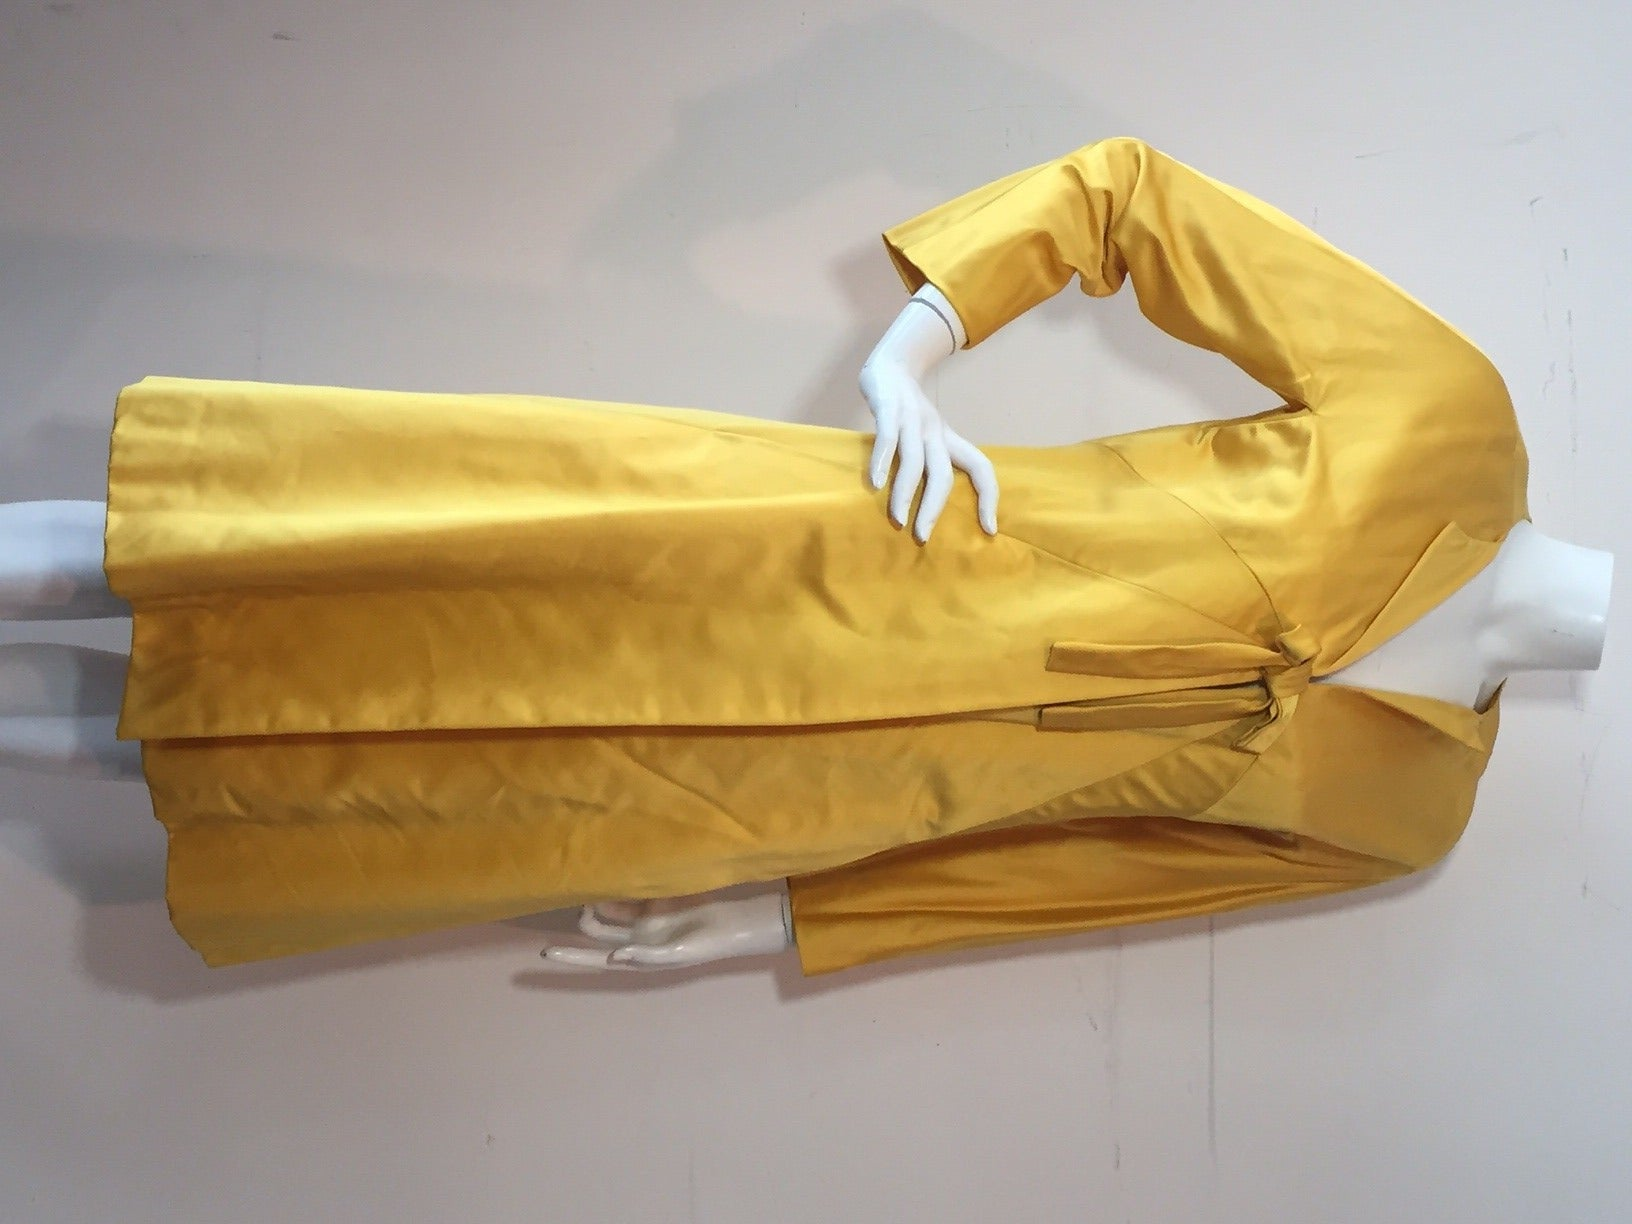 1960s Canary Yellow Silk Evening Coat with Sunburst Seaming 2